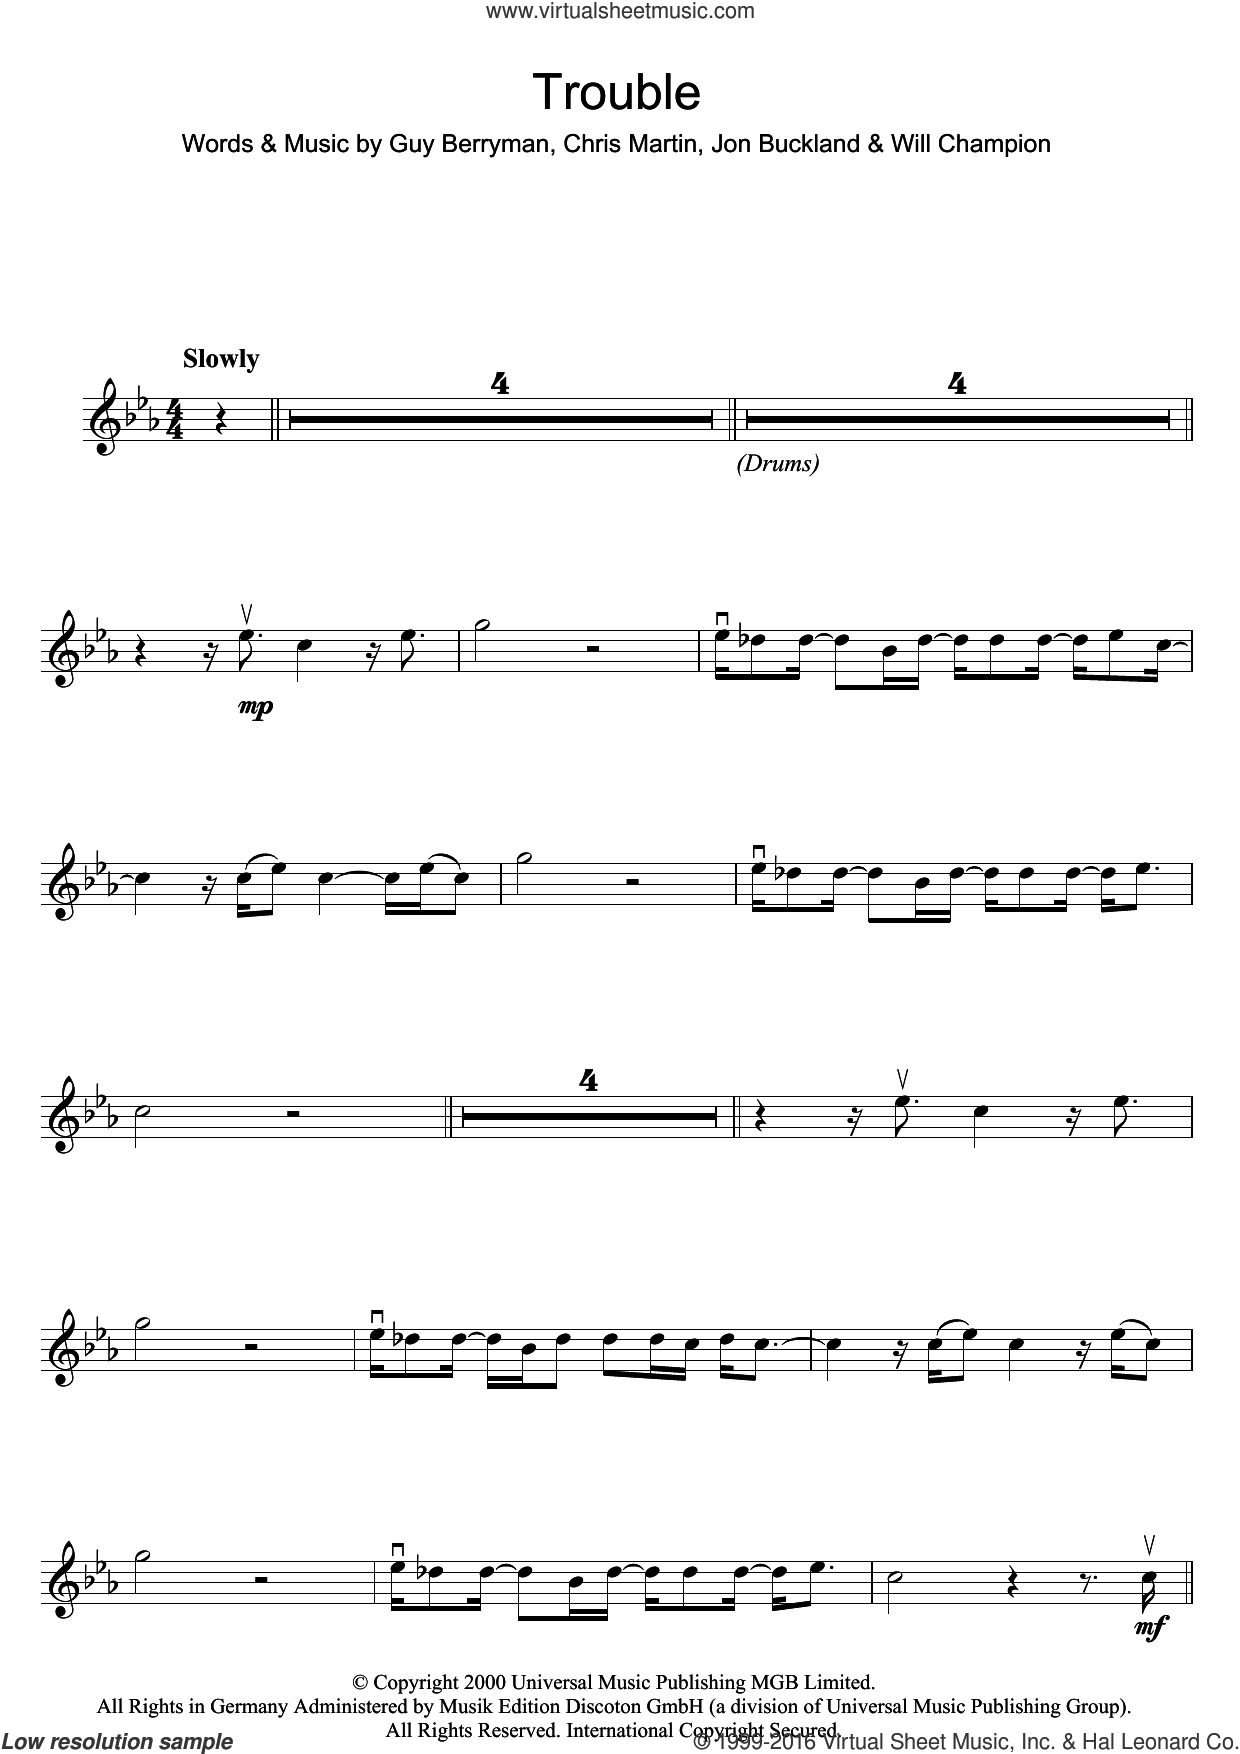 Trouble sheet music for violin solo by Coldplay, Chris Martin, Guy Berryman, Jonny Buckland and Will Champion, intermediate skill level